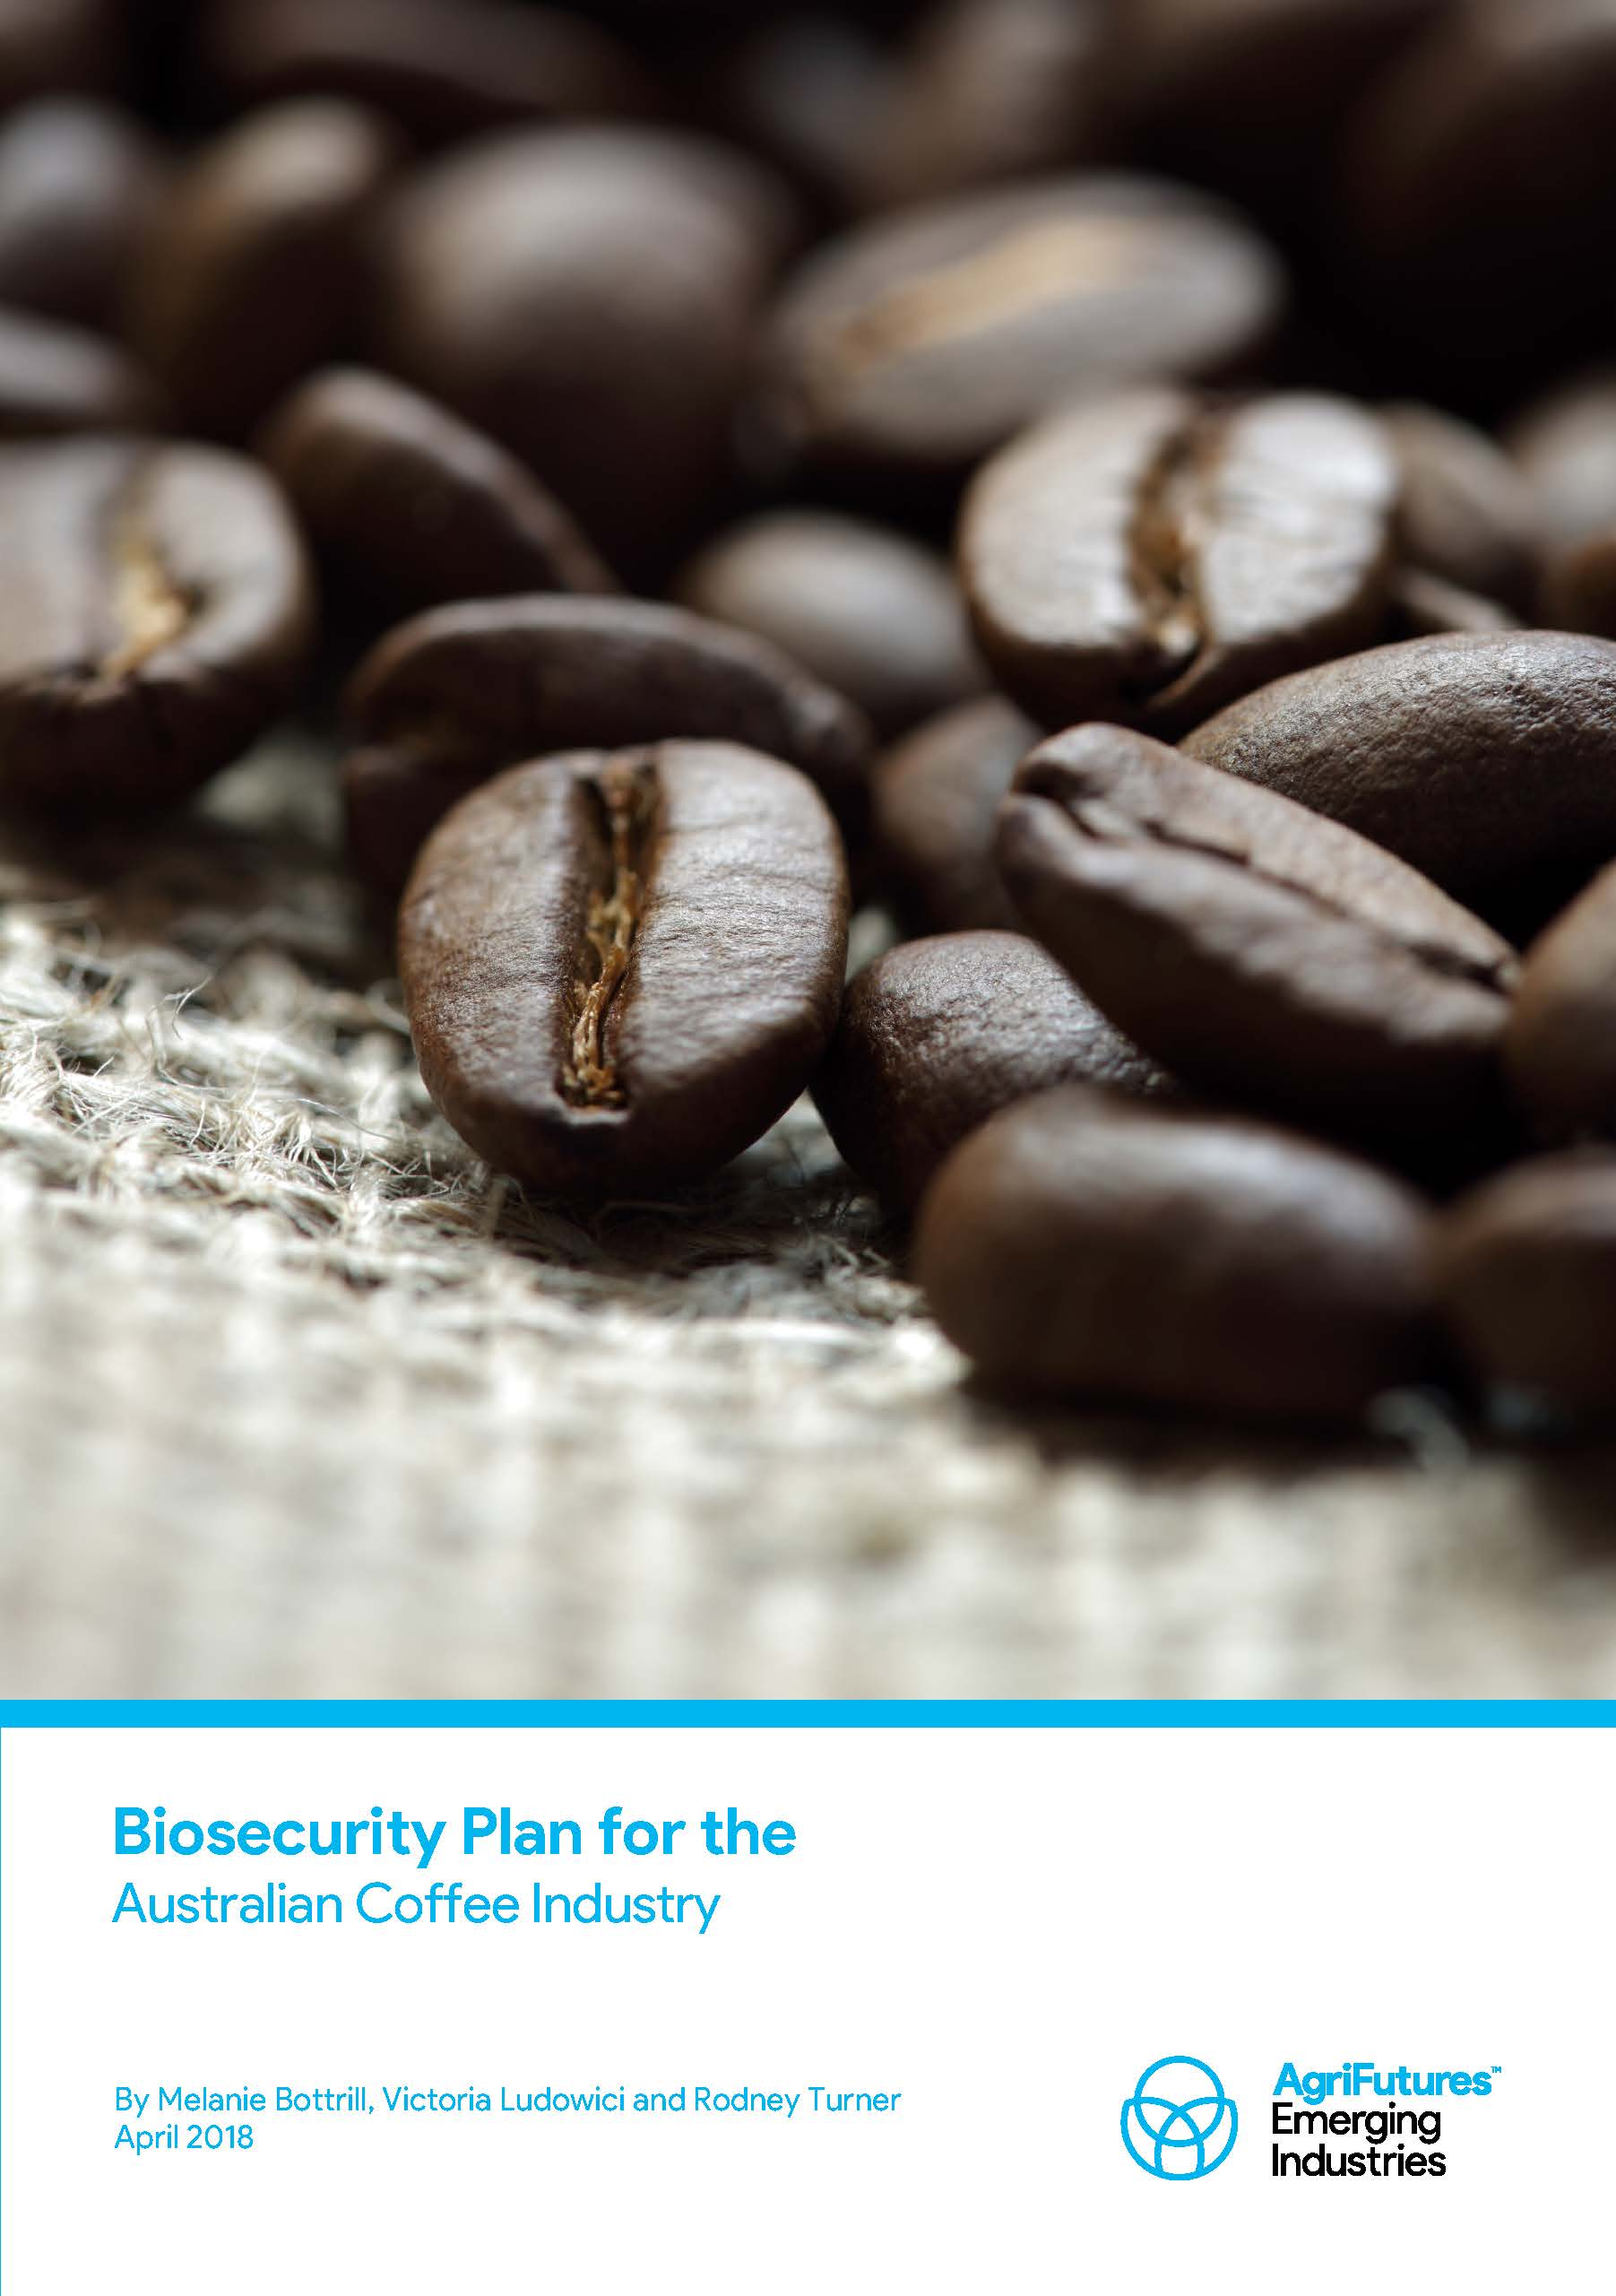 Biosecurity Plan for the Australian Coffee Industry - image